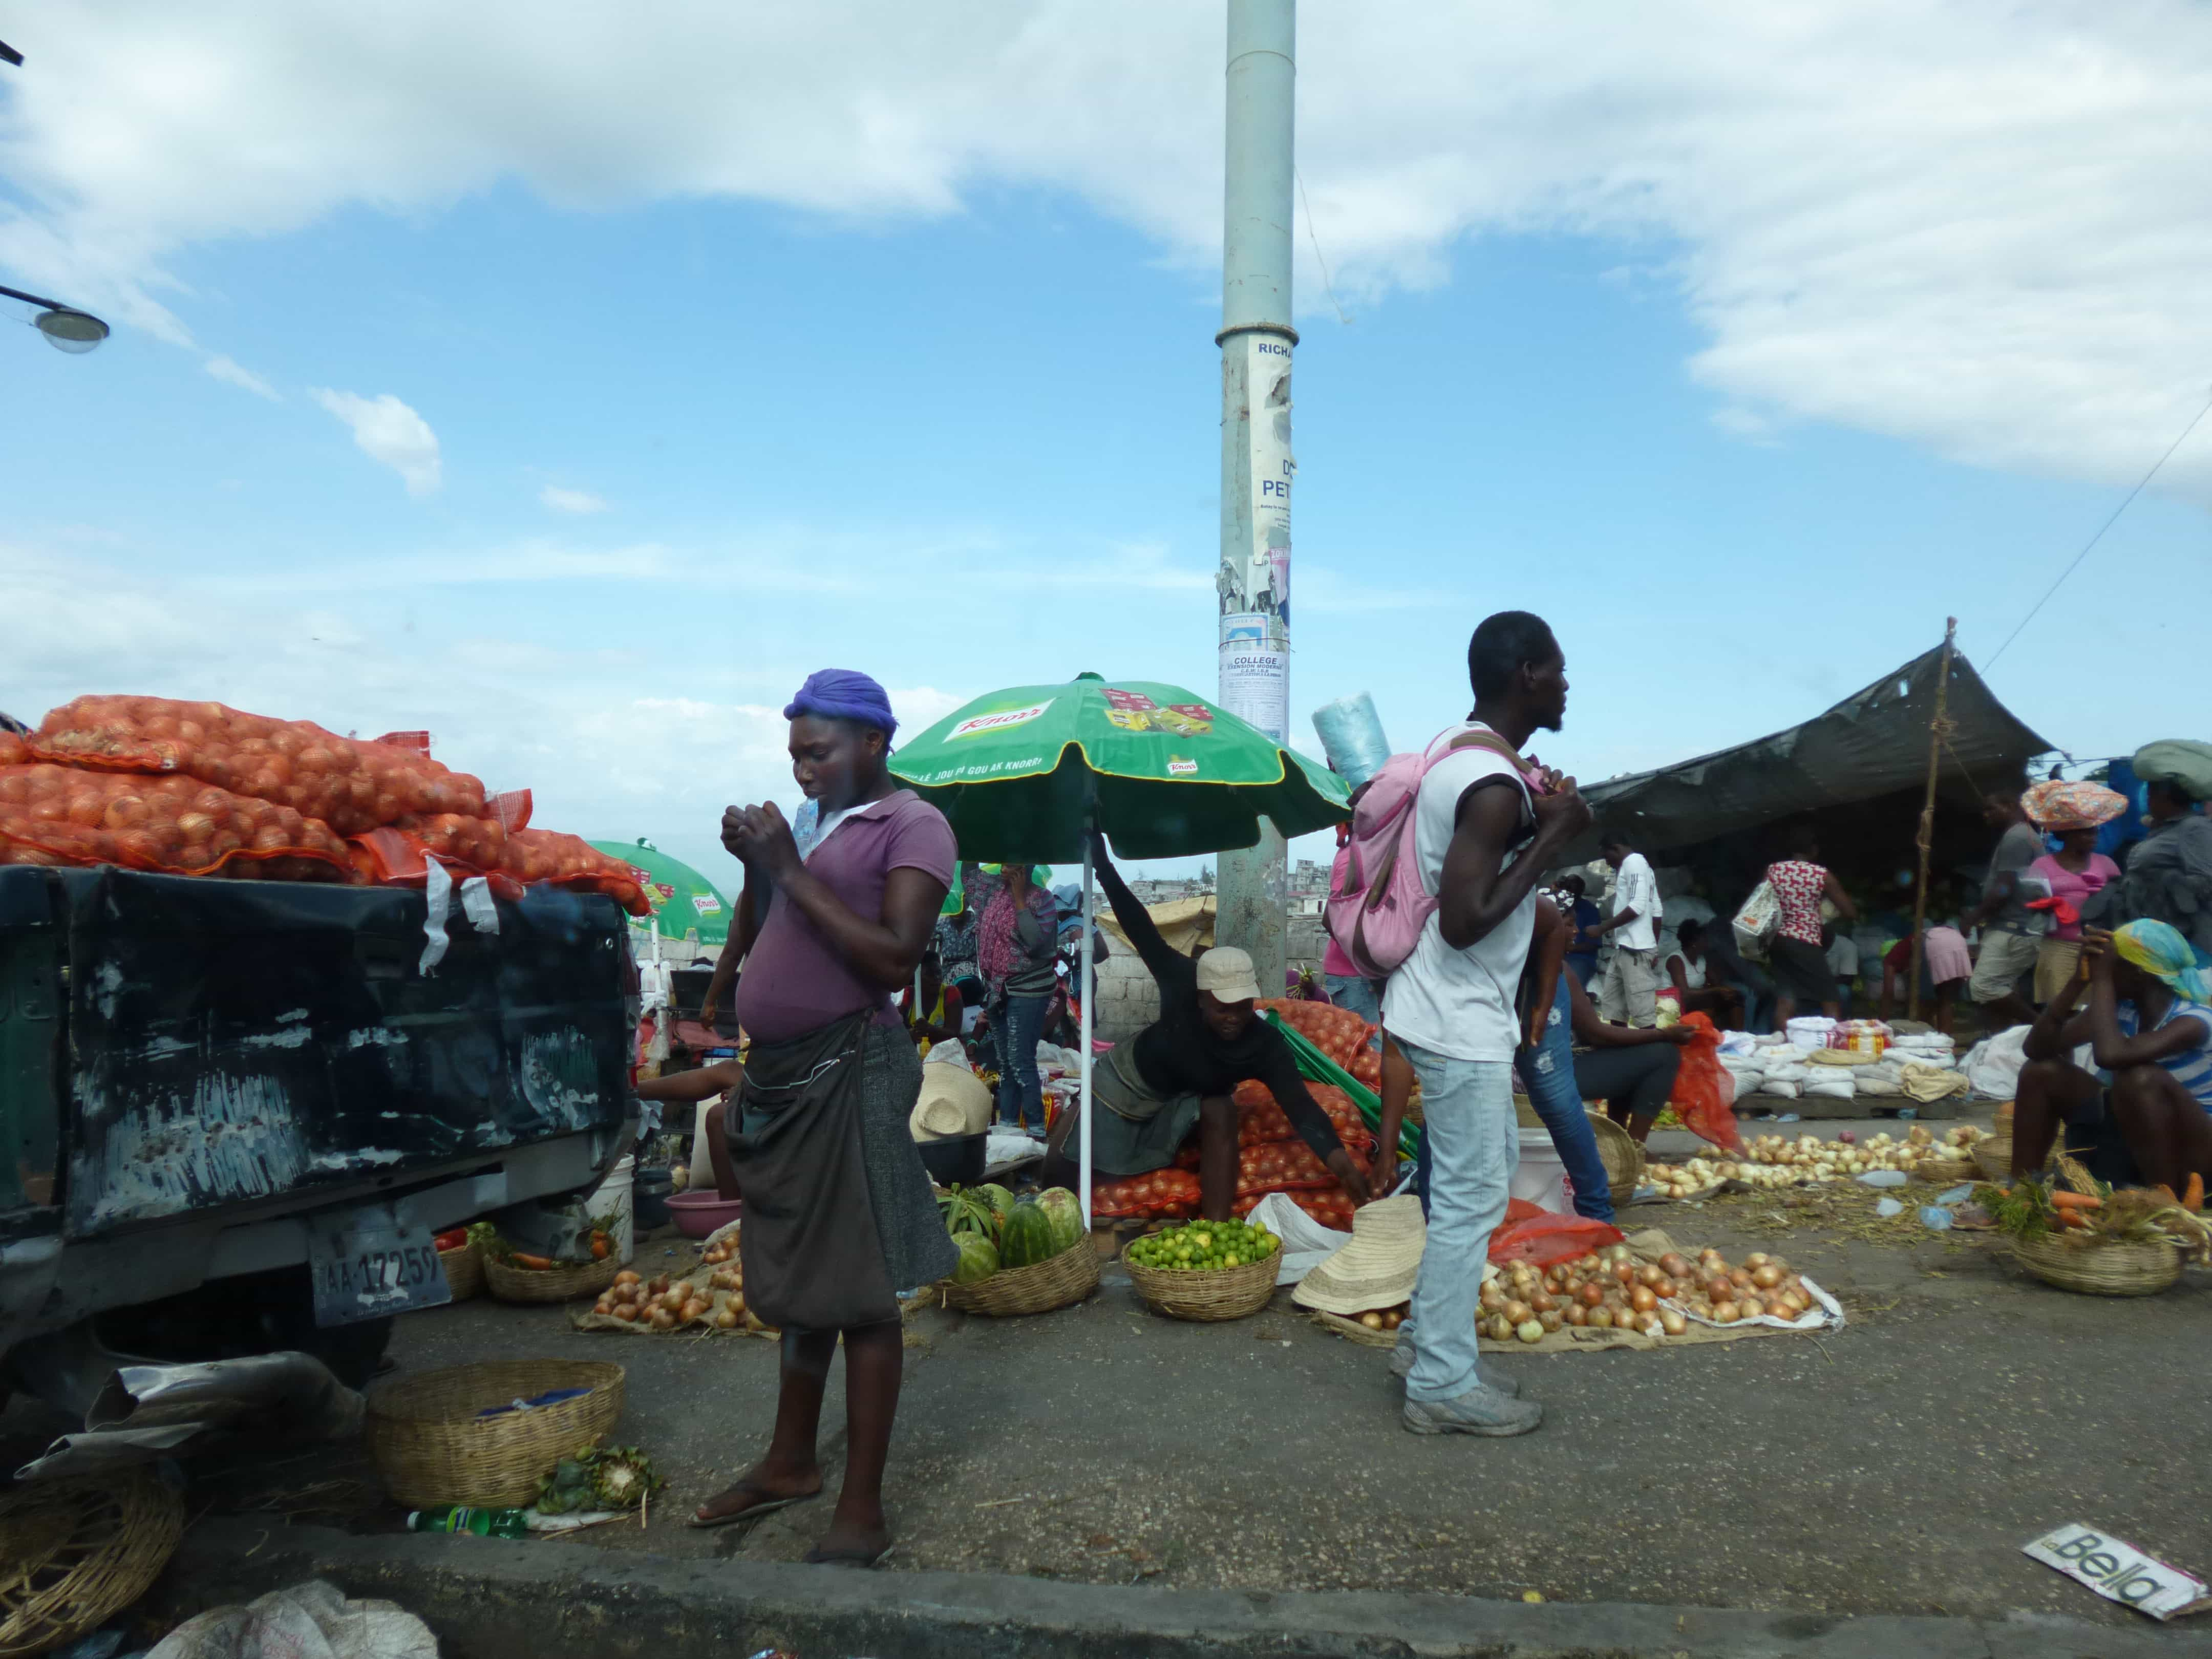 Marché en Haiti. Photo : Registry